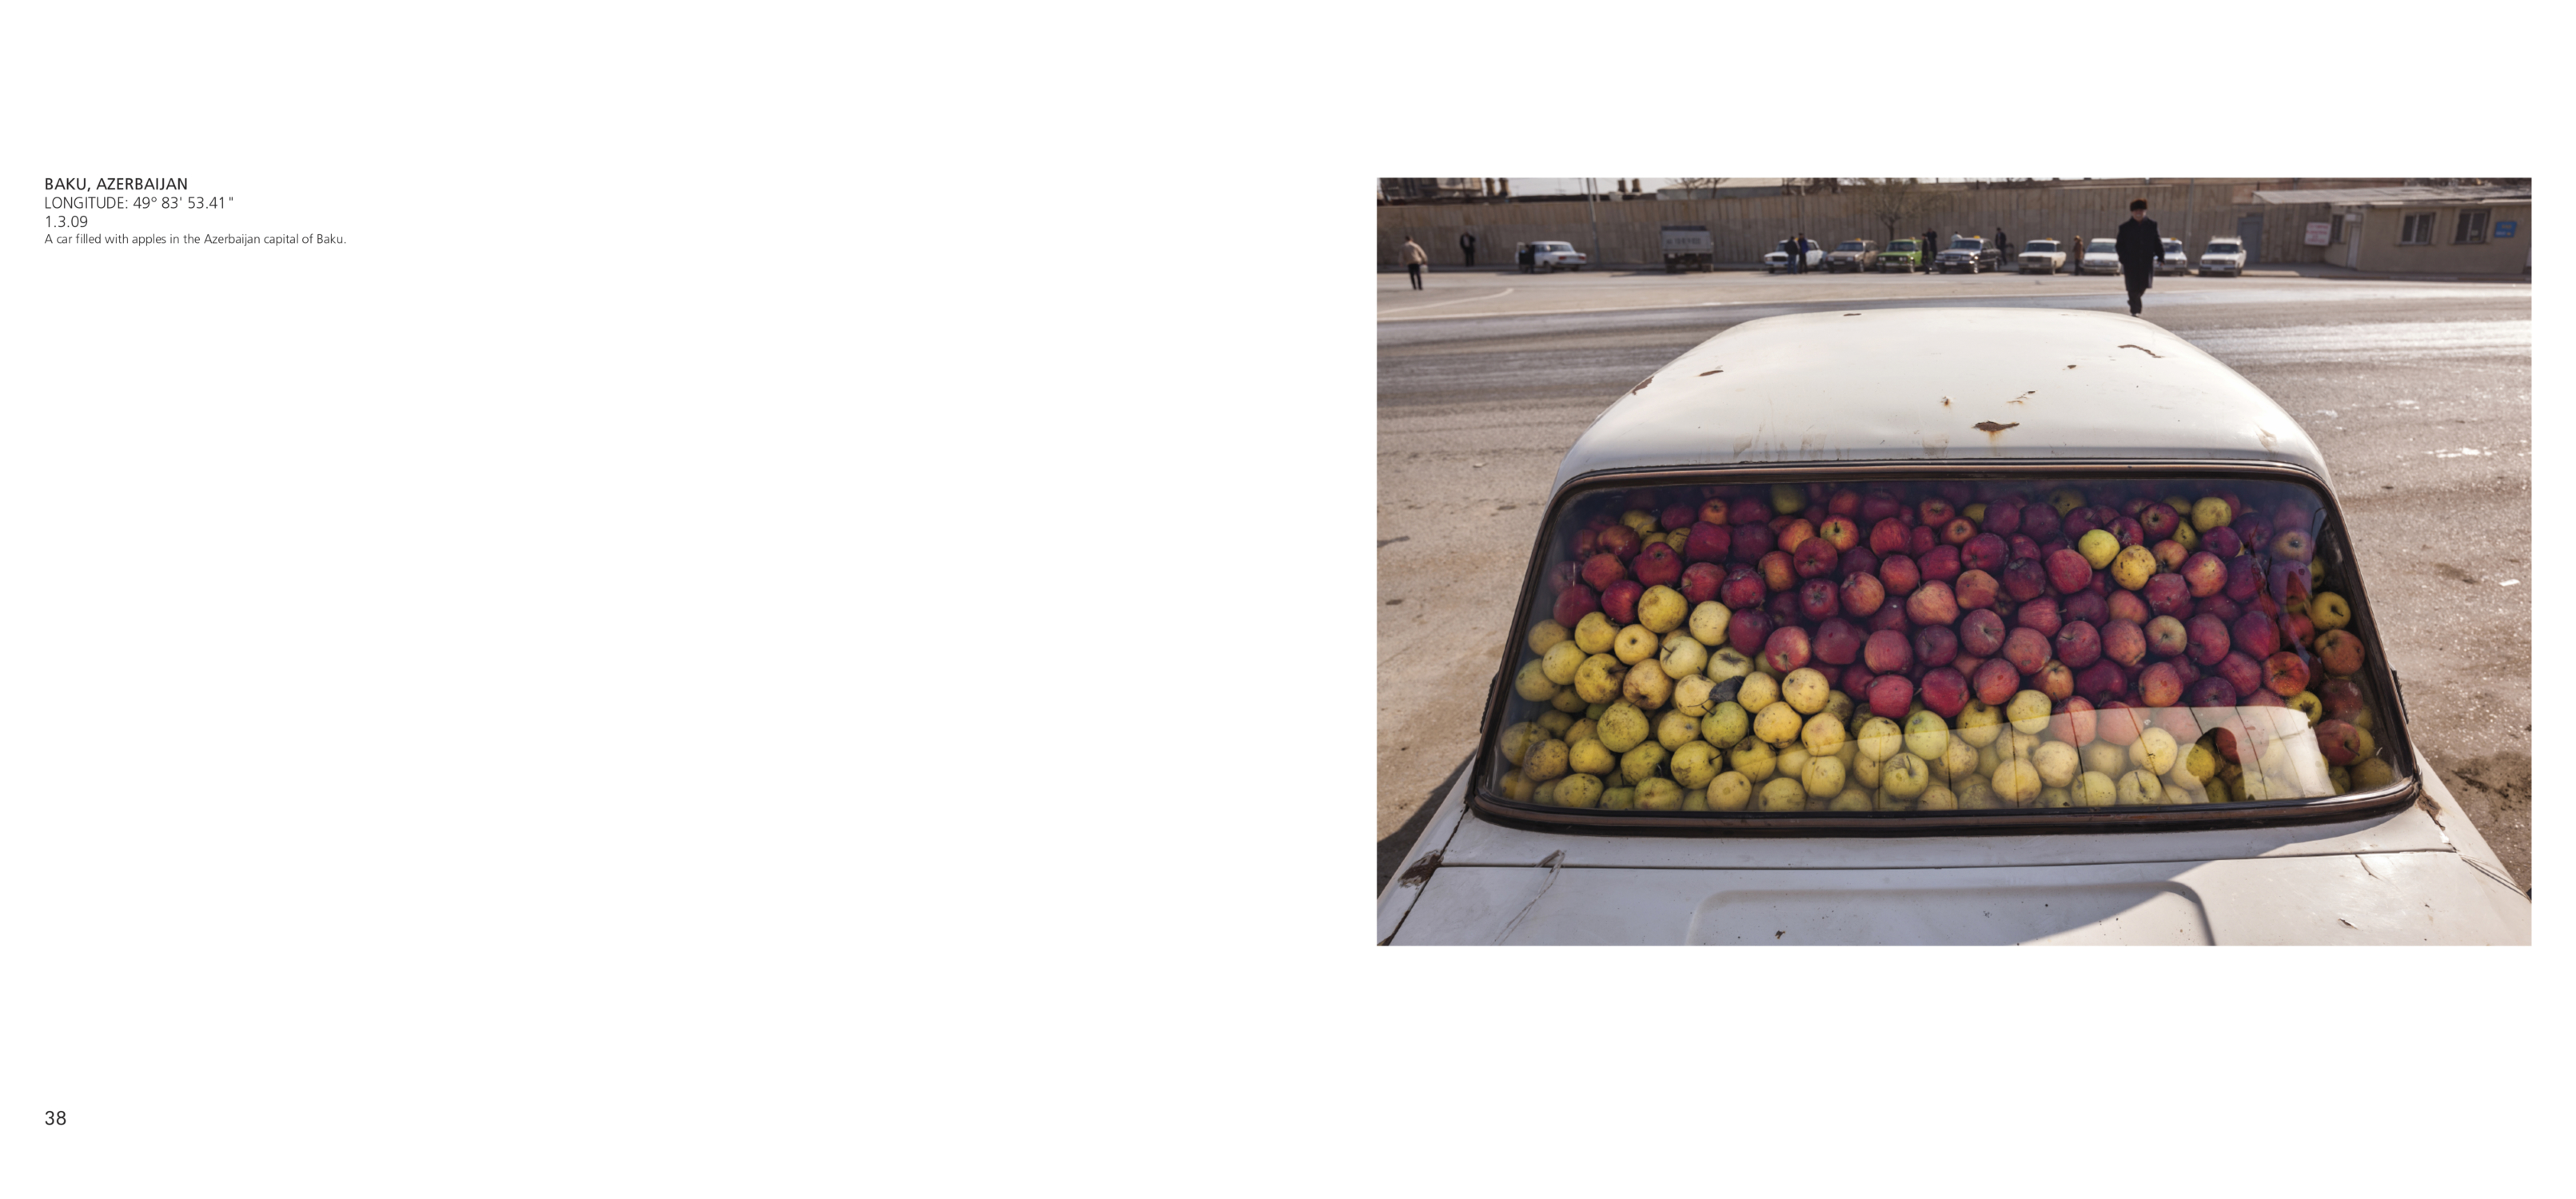 A car filled with apples in the Azerbaijan capital of Baku.